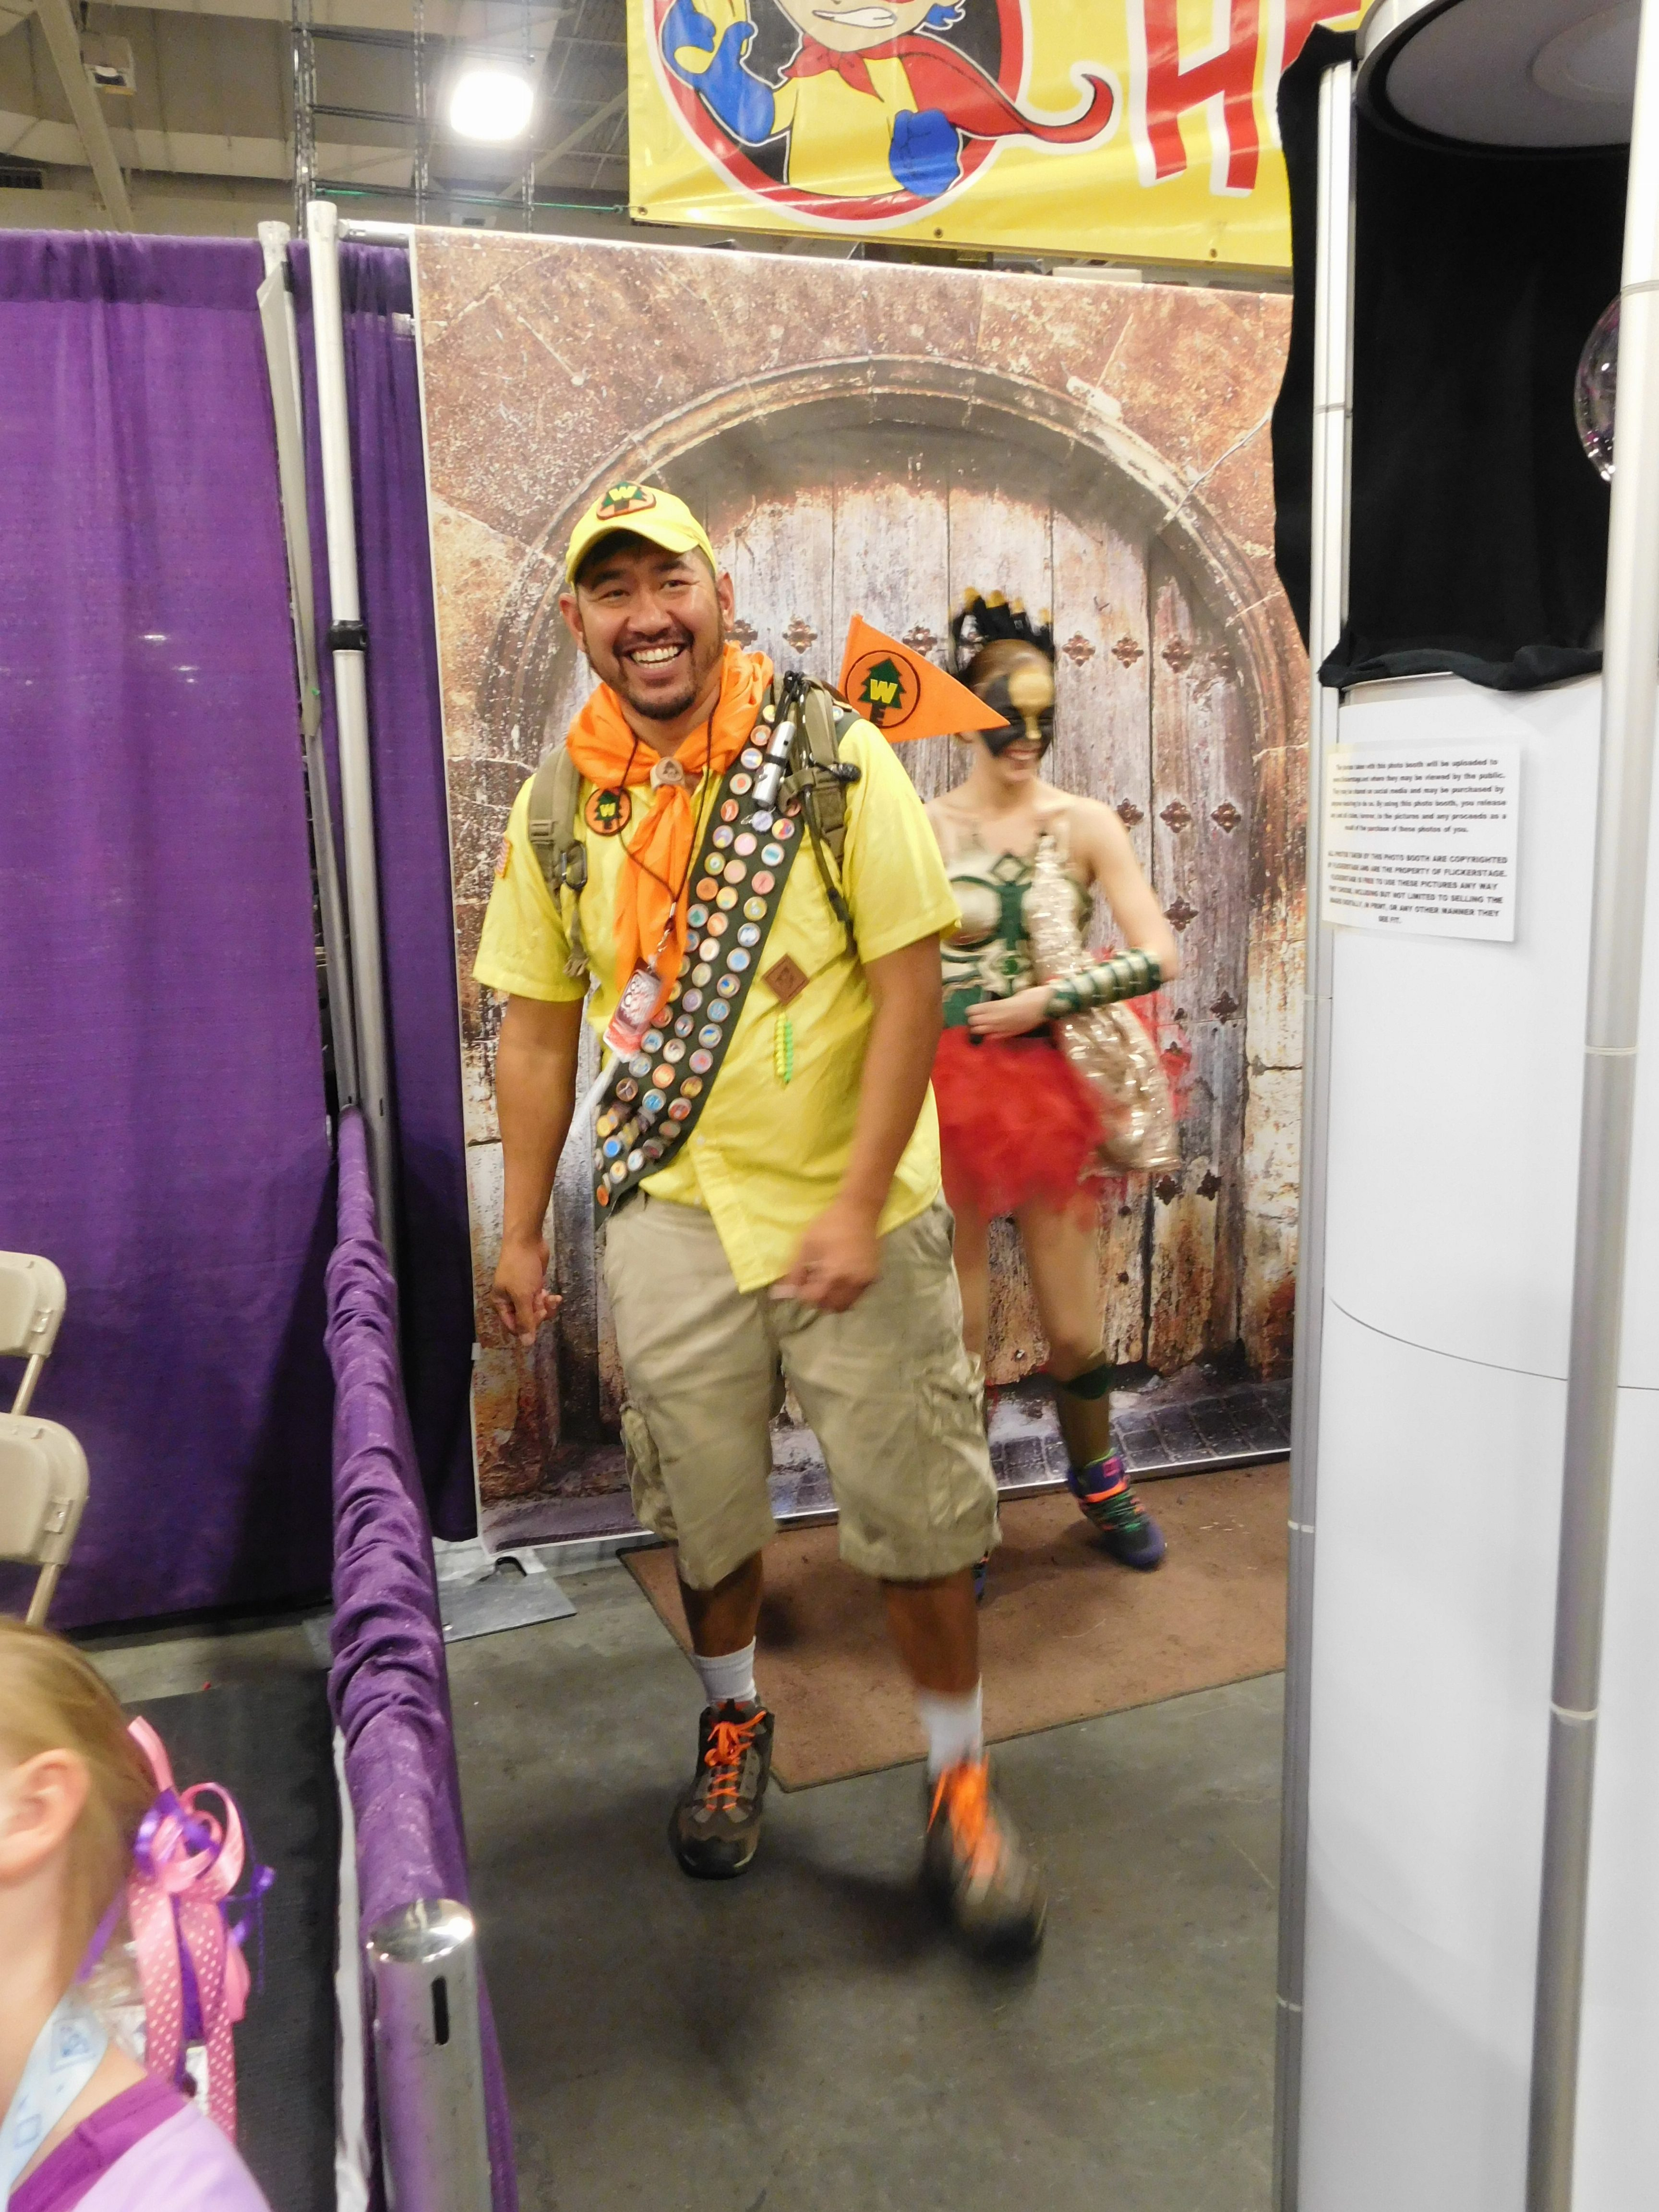 SLCCd3.021 - Russell is checking out the KidCon Castle at Salt Lake Comic Con 2016